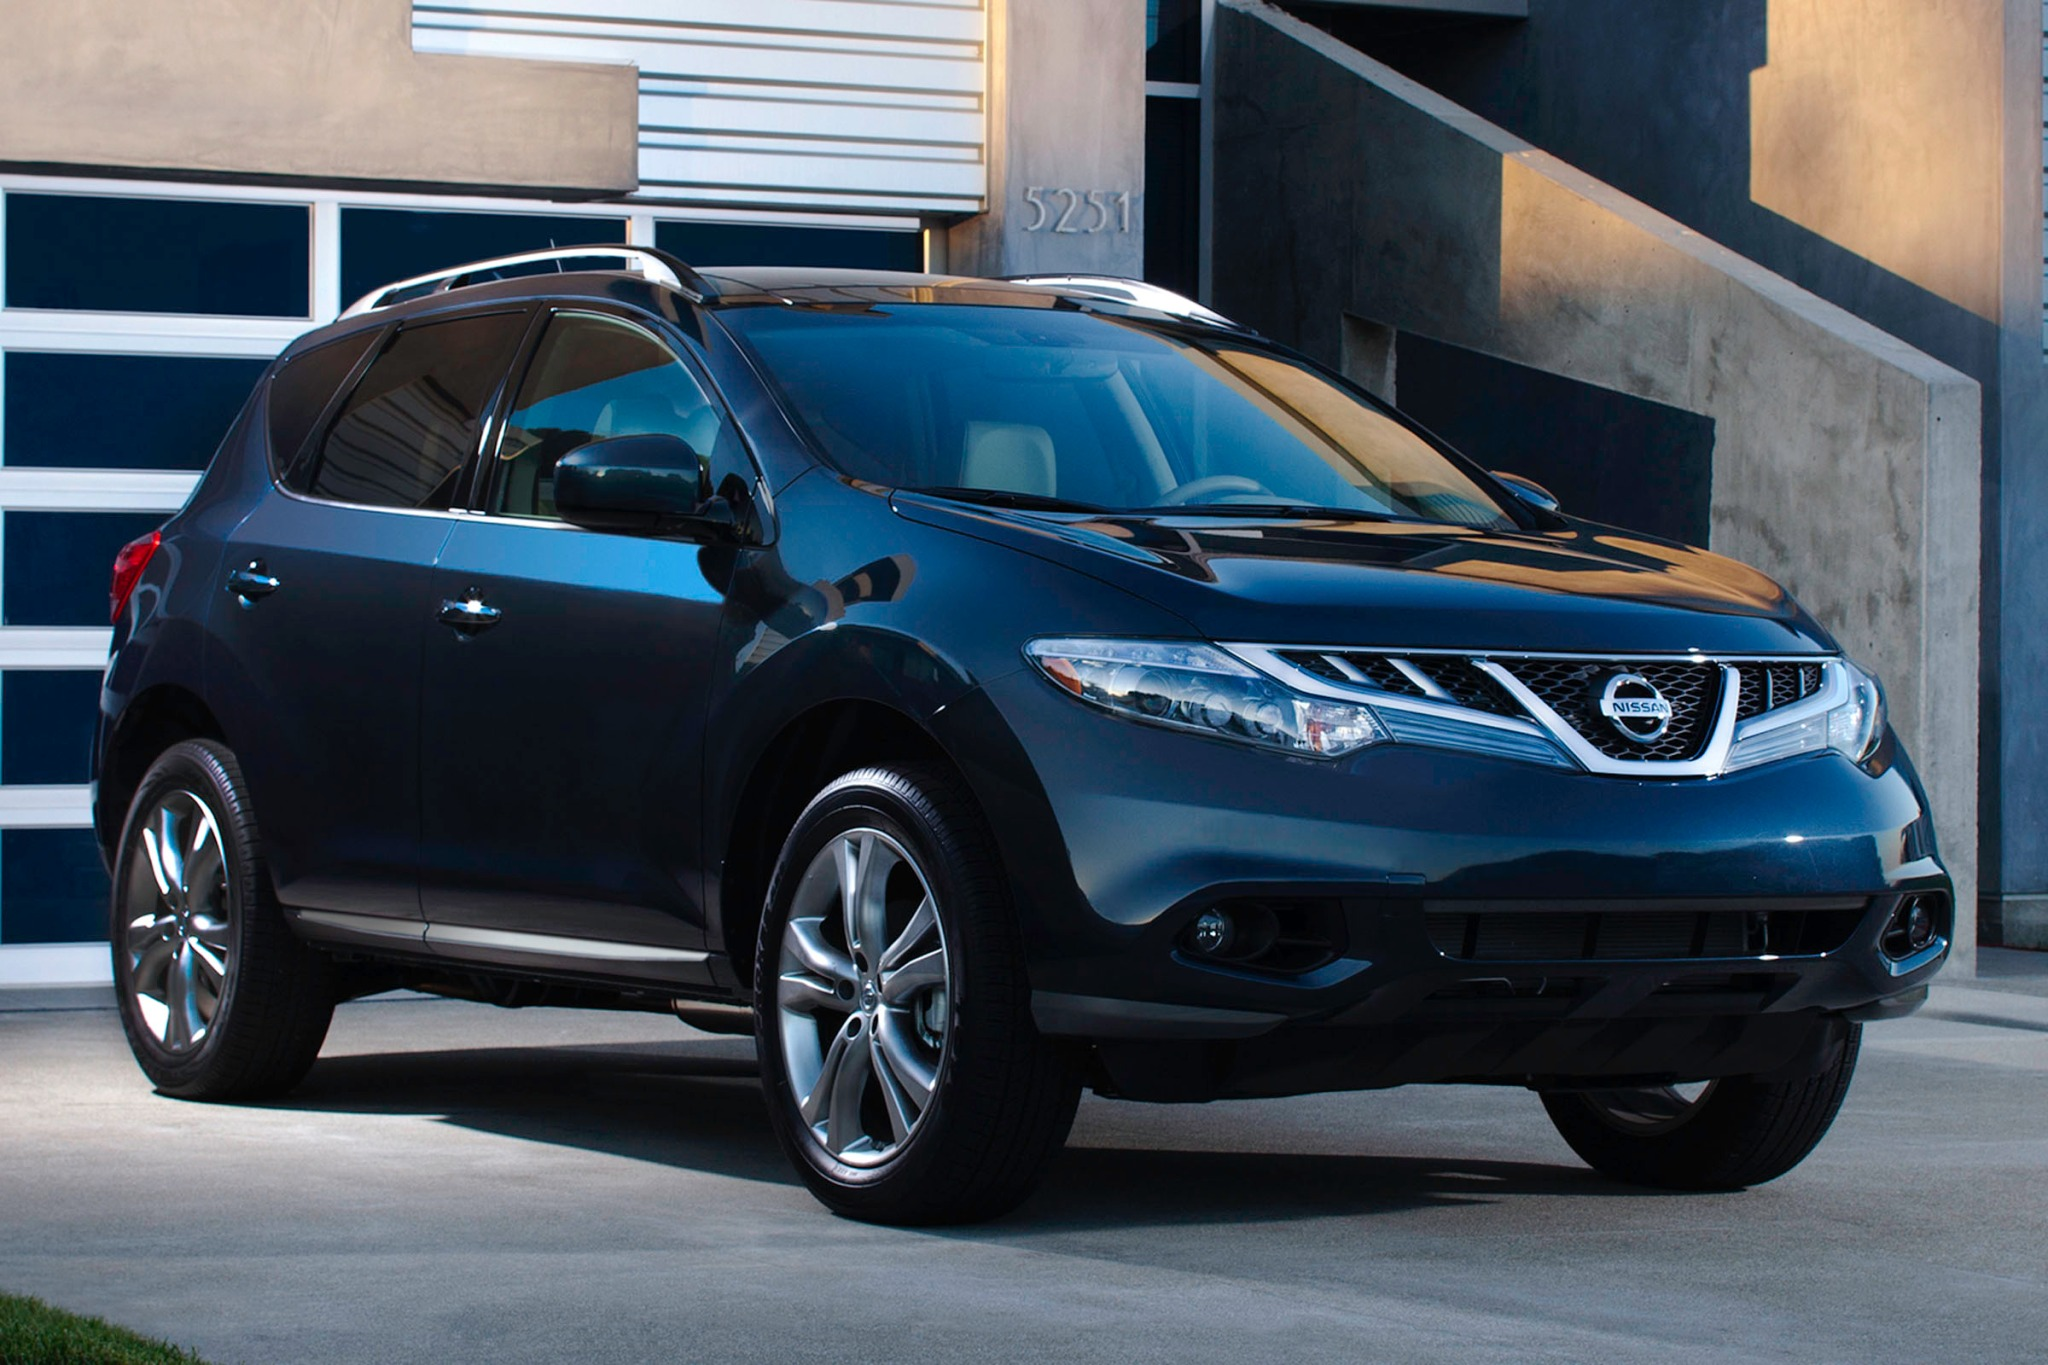 2012 nissan murano 4dr suv le fq oem 2 2048